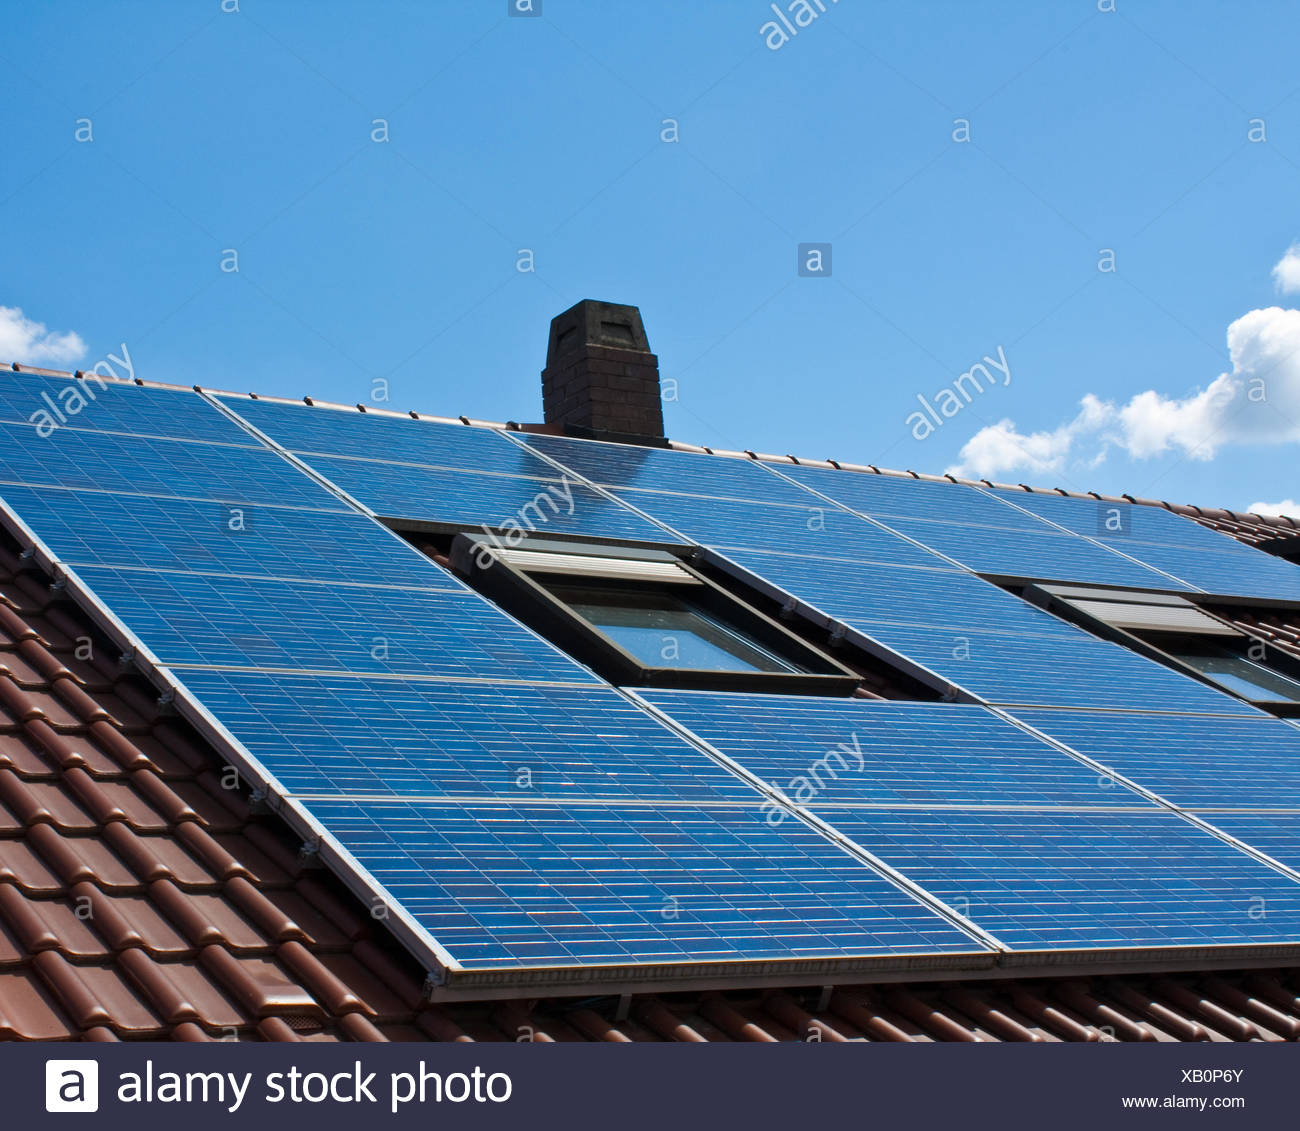 photovoltaic system - Stock Image